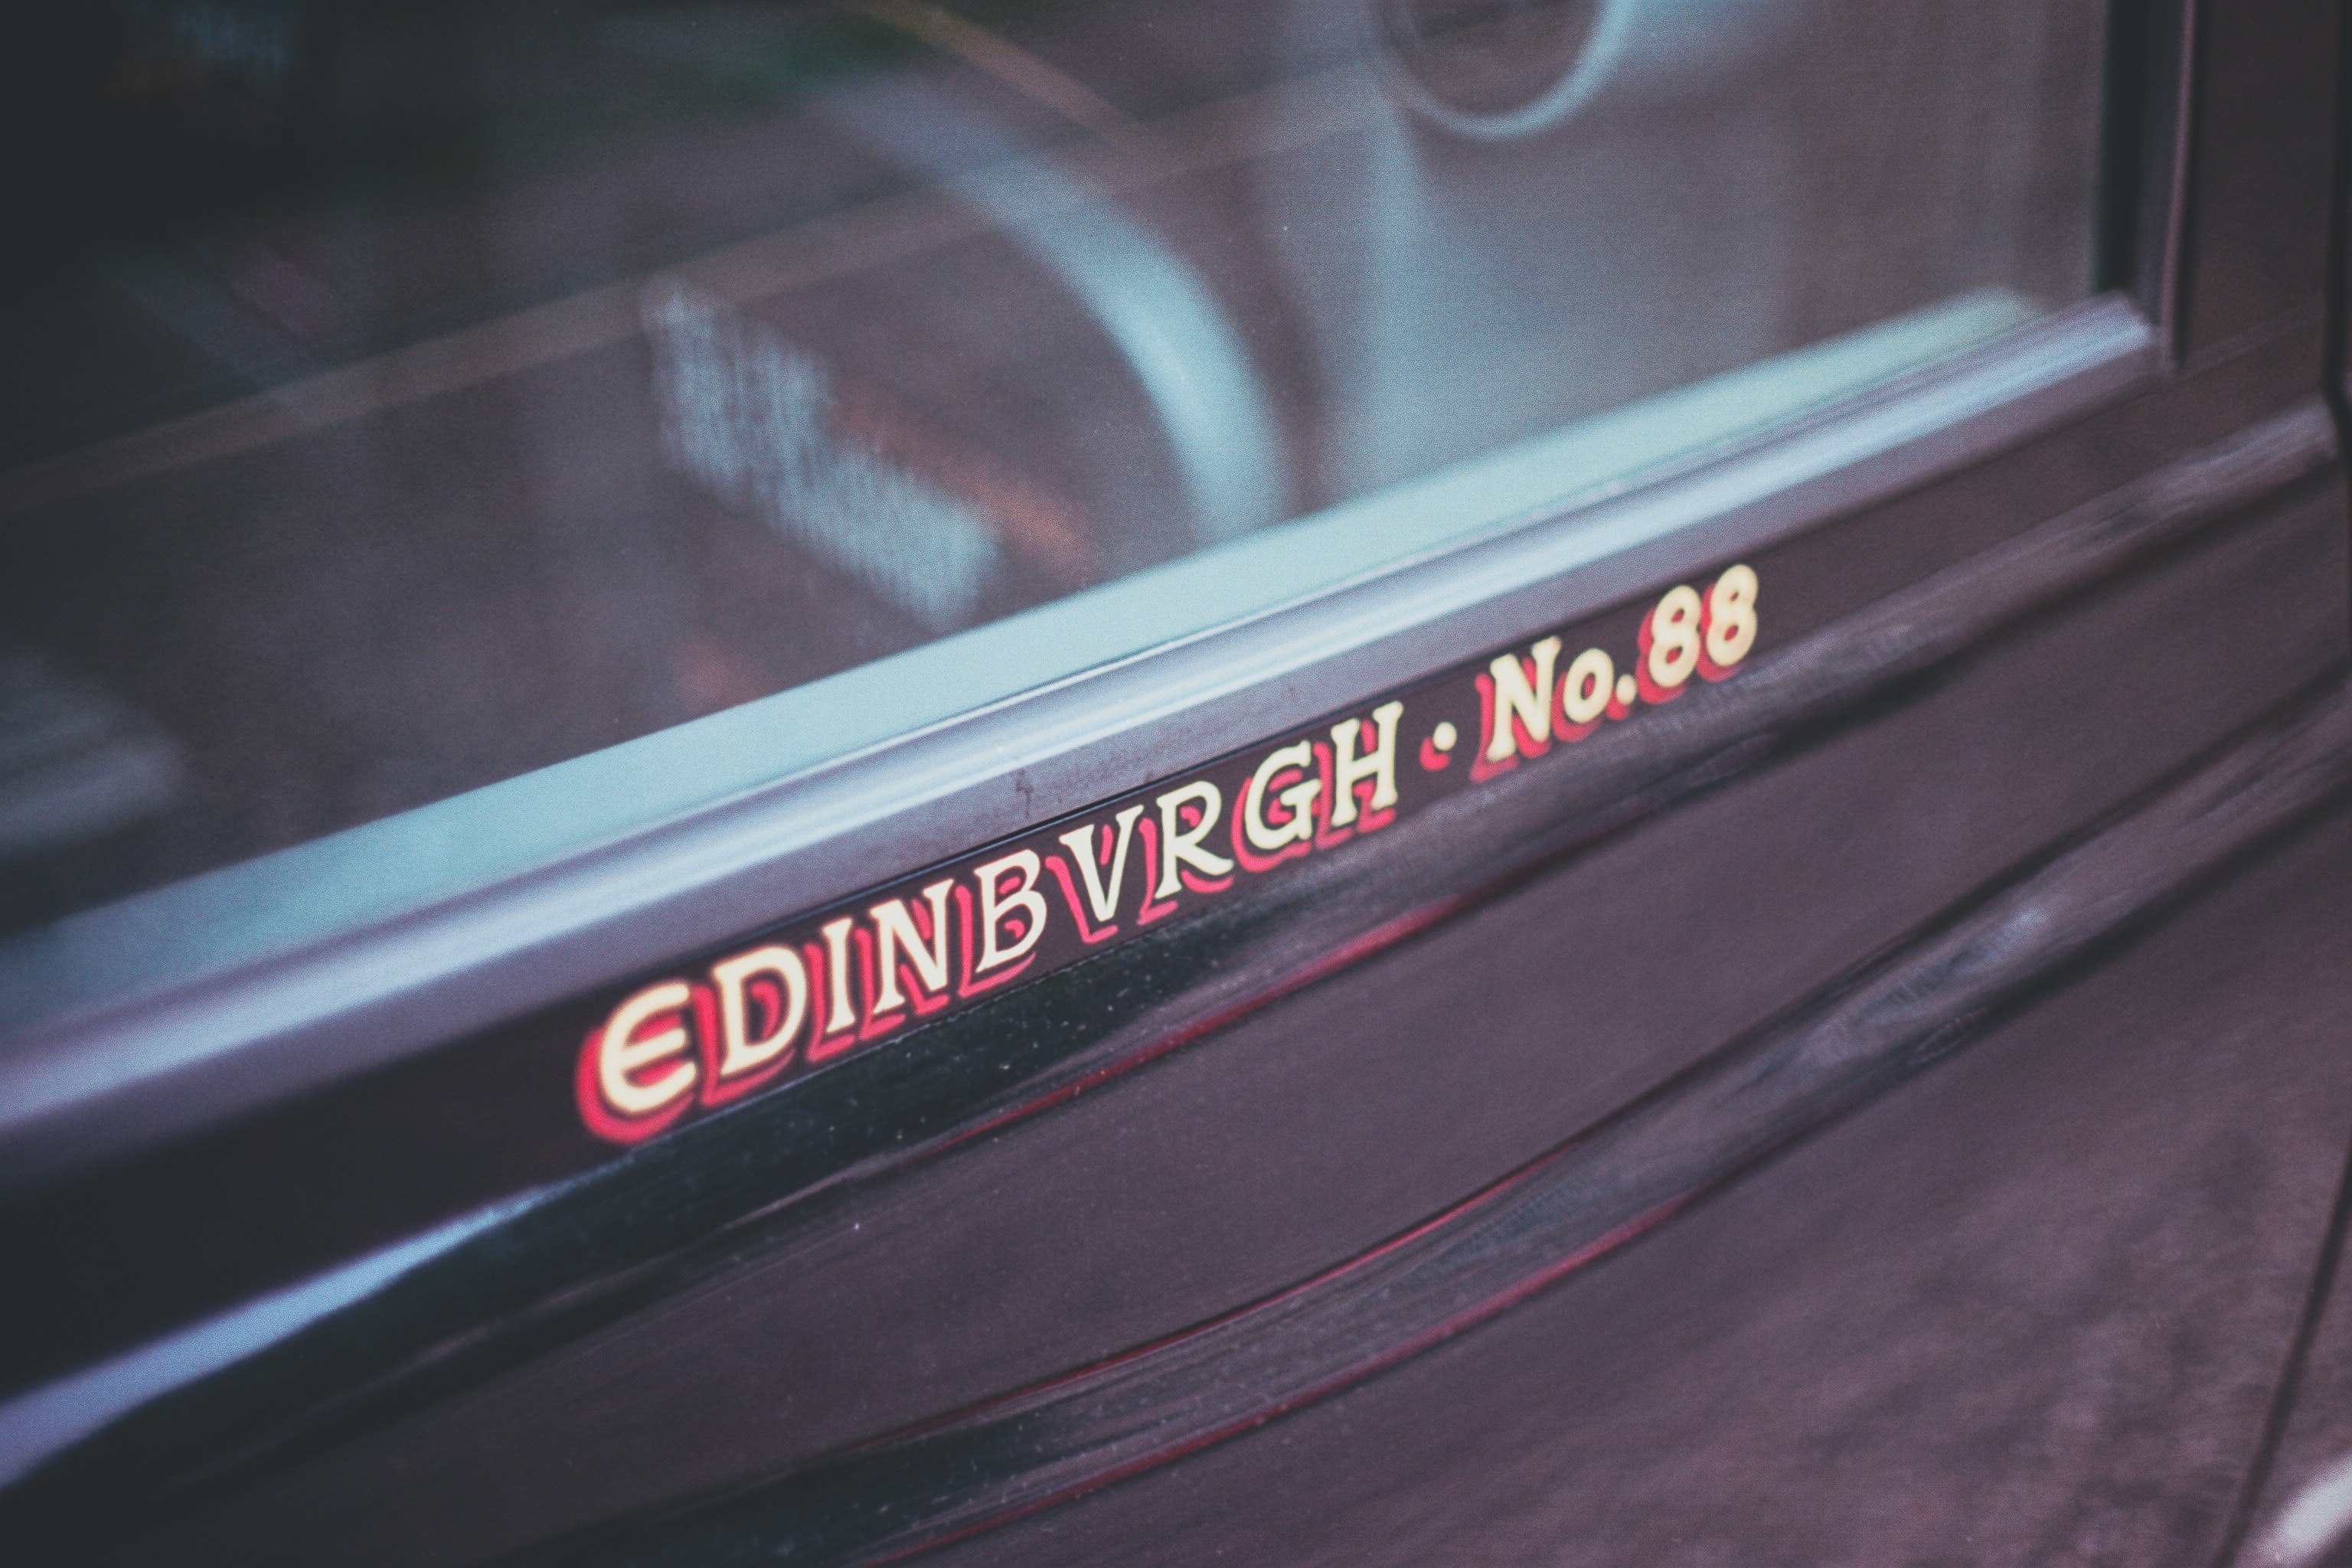 photo of Edinbvrgh No. 88 text on black surface